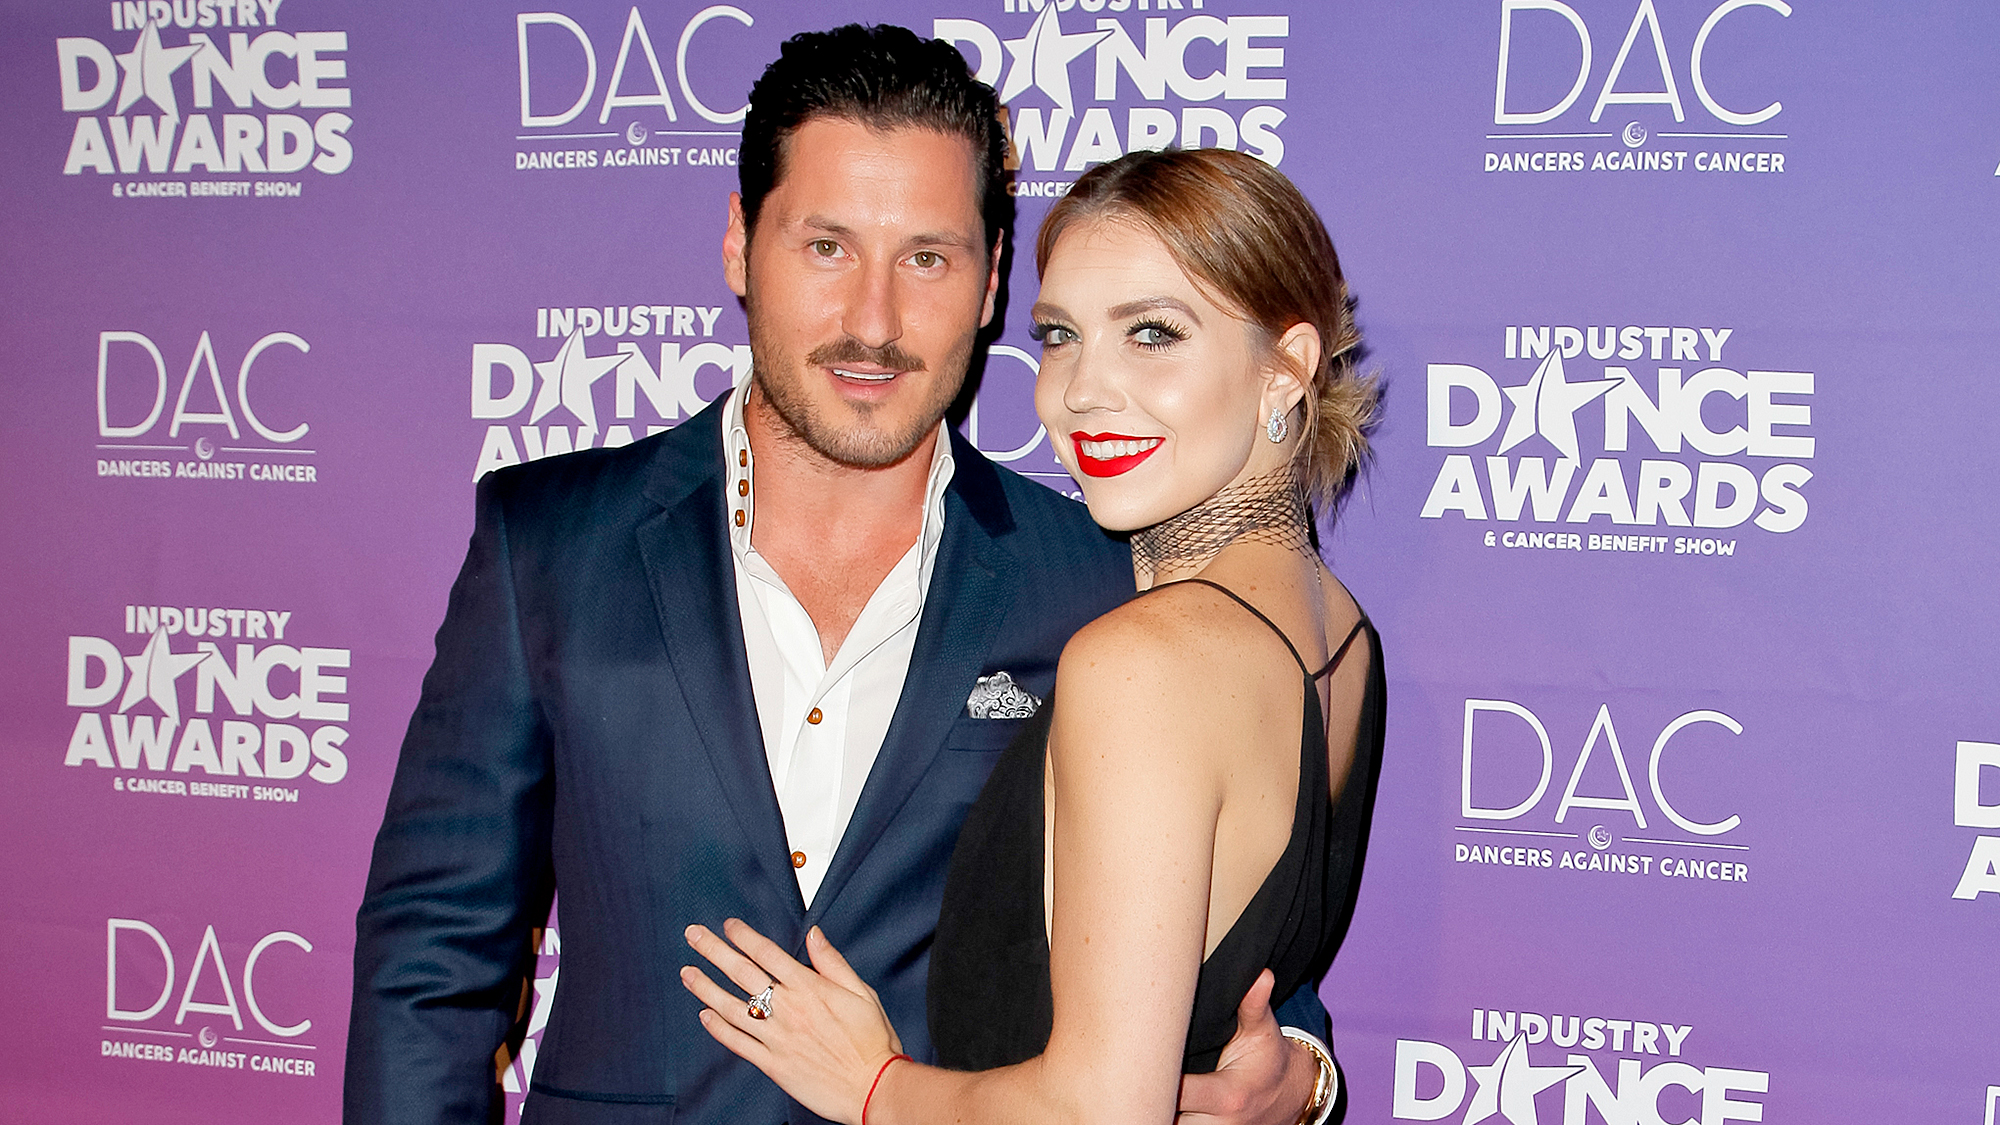 The Tango Is Too Hot! 8 'Dancing With the Stars' Couples Who Fell in Love Because of the Show